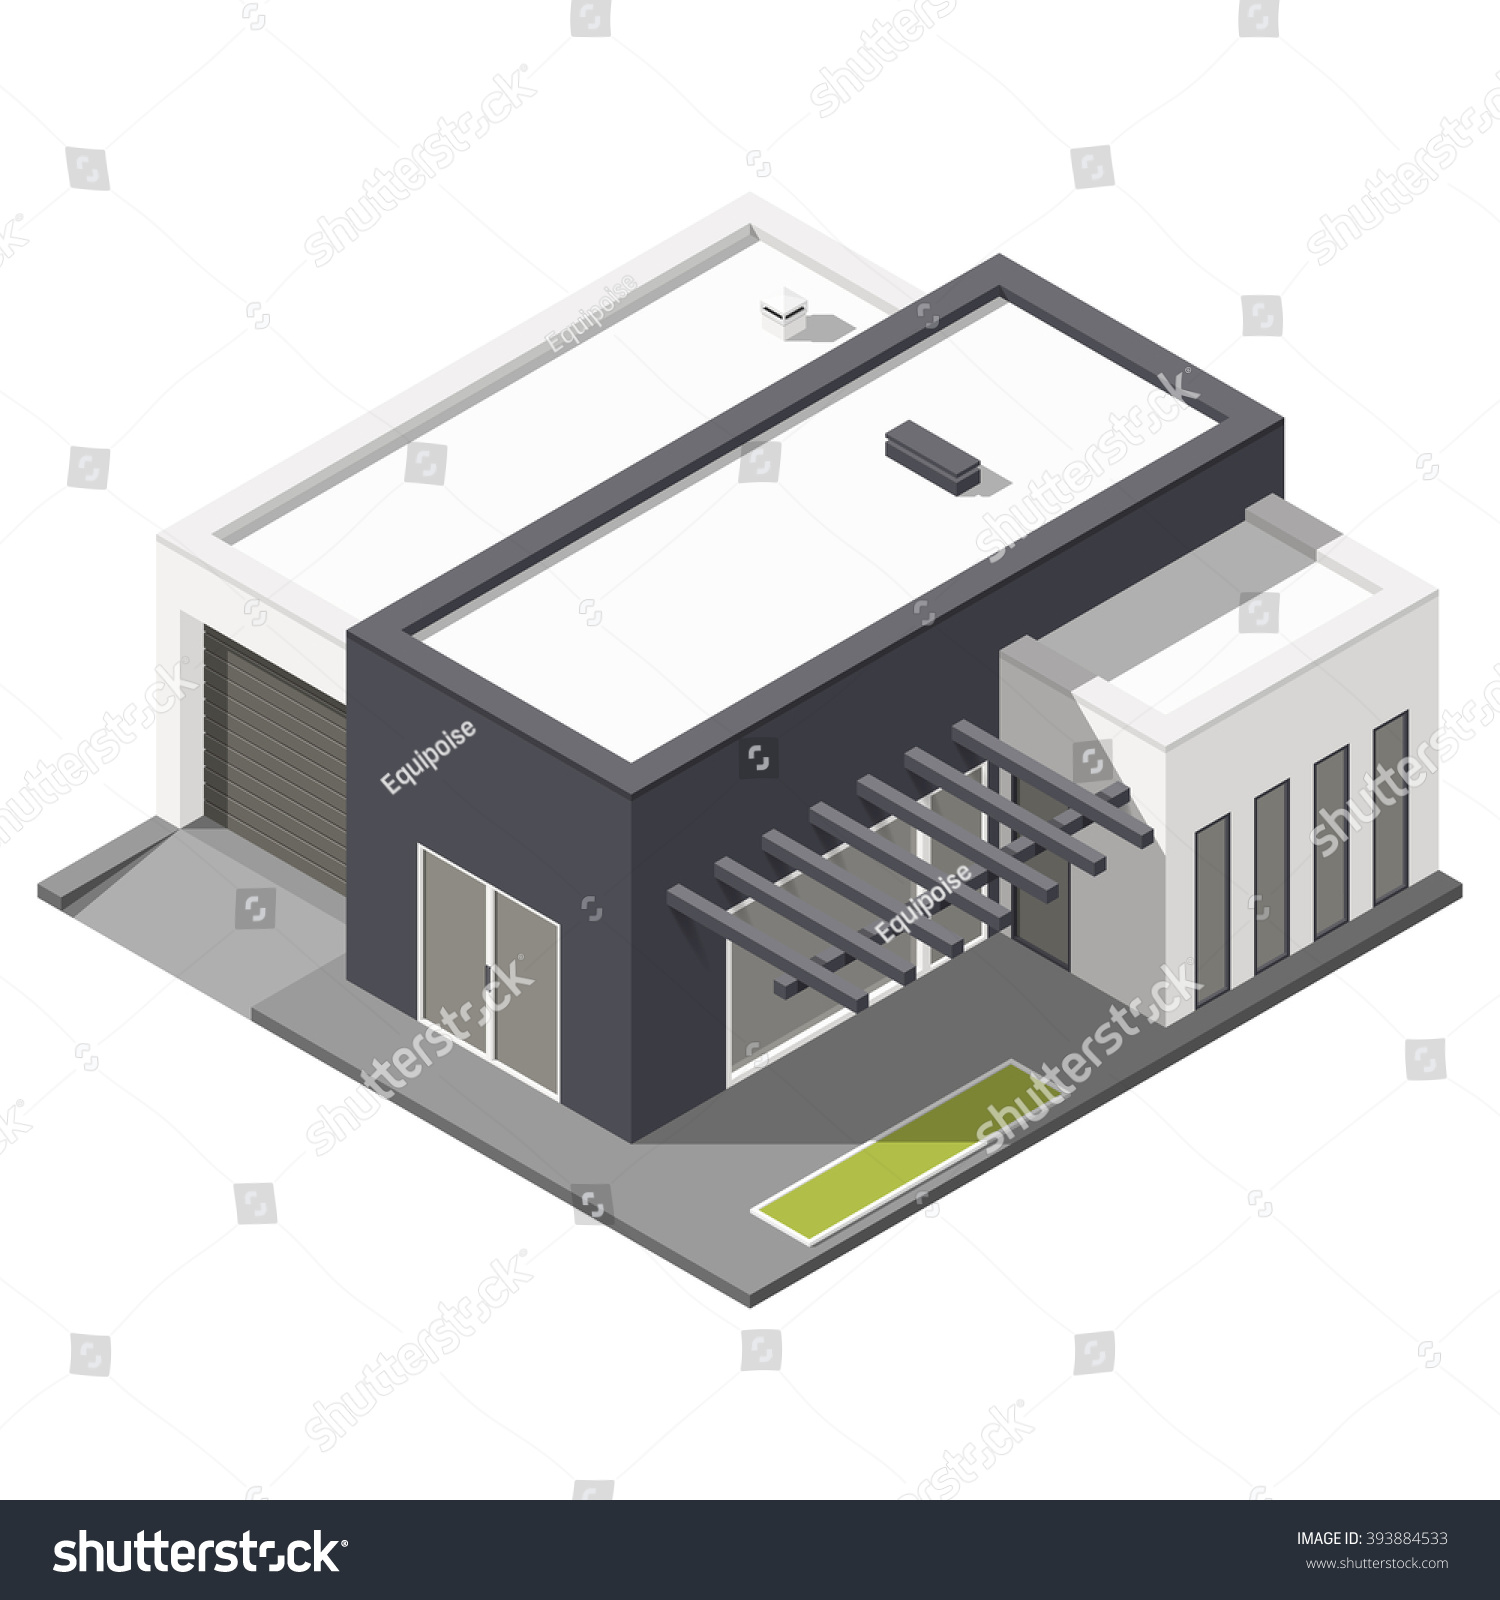 house building onlineonline image photo editor